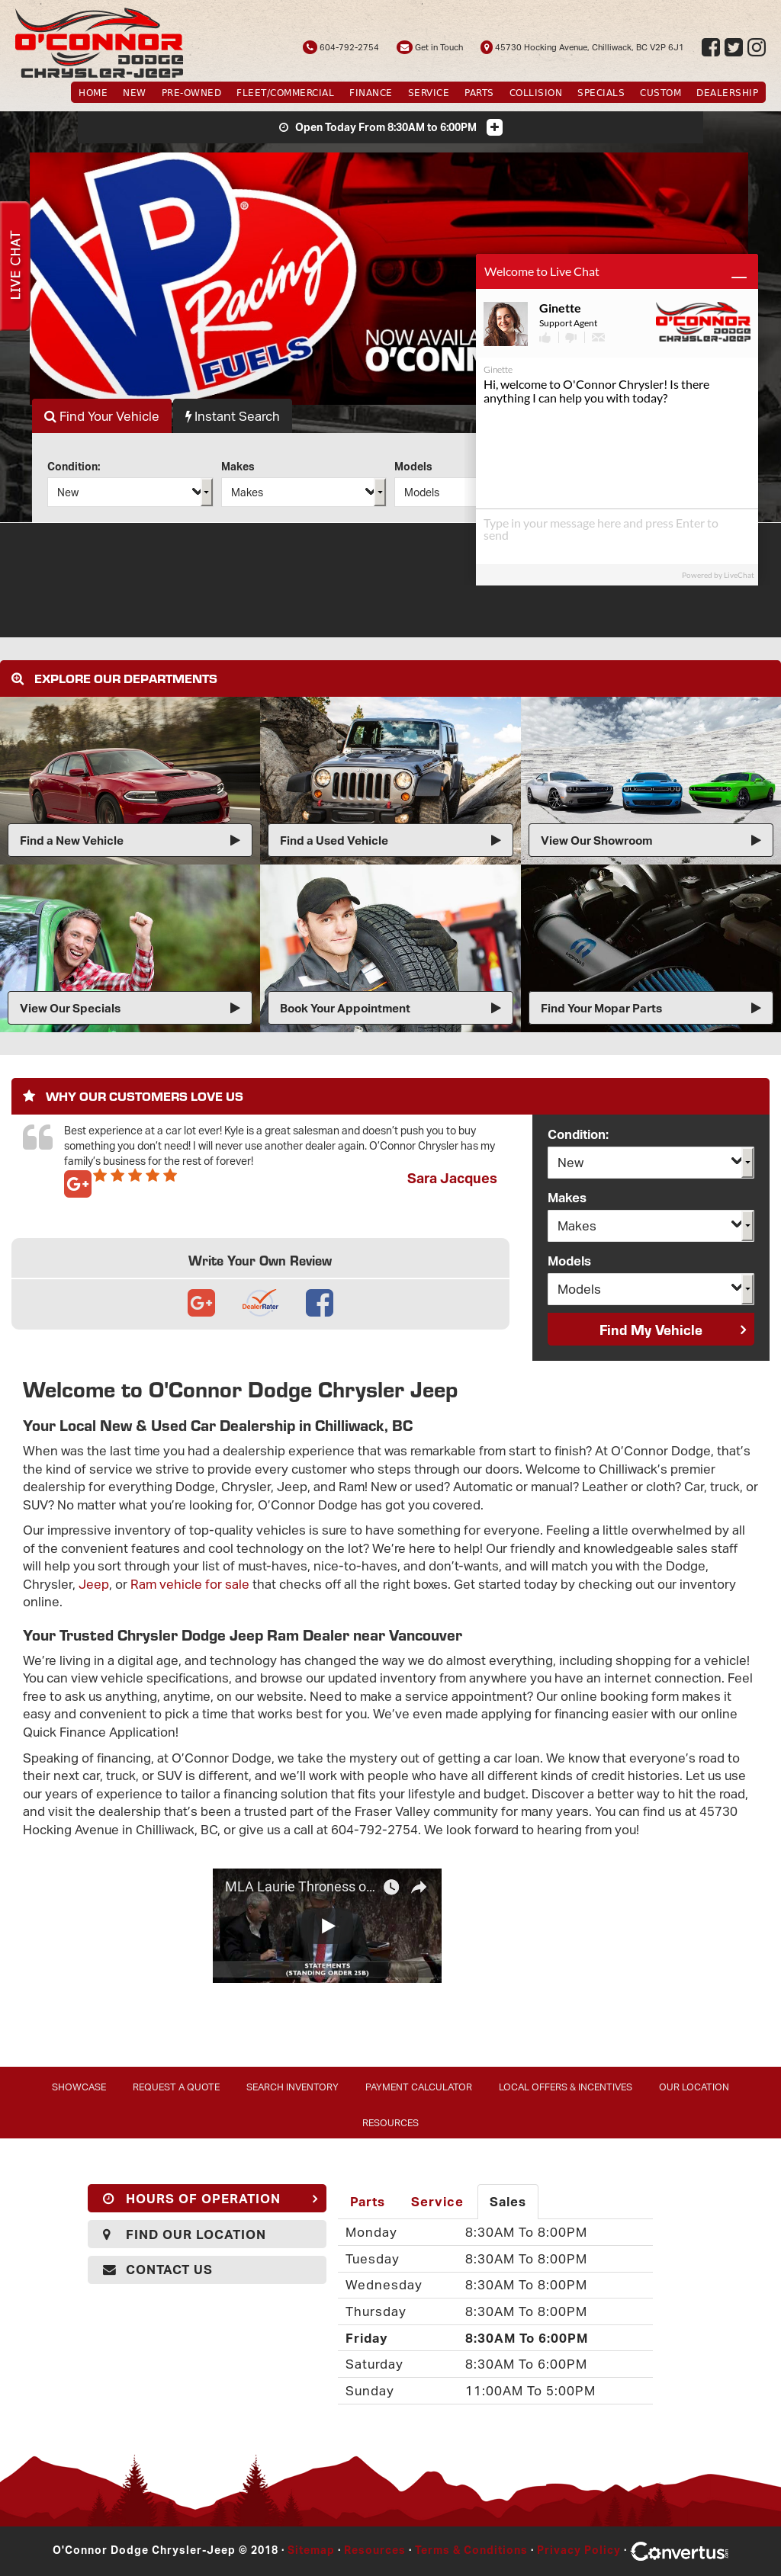 O Connor Chrysler >> O Connor Dodge Chrysler Jeep Competitors Revenue And